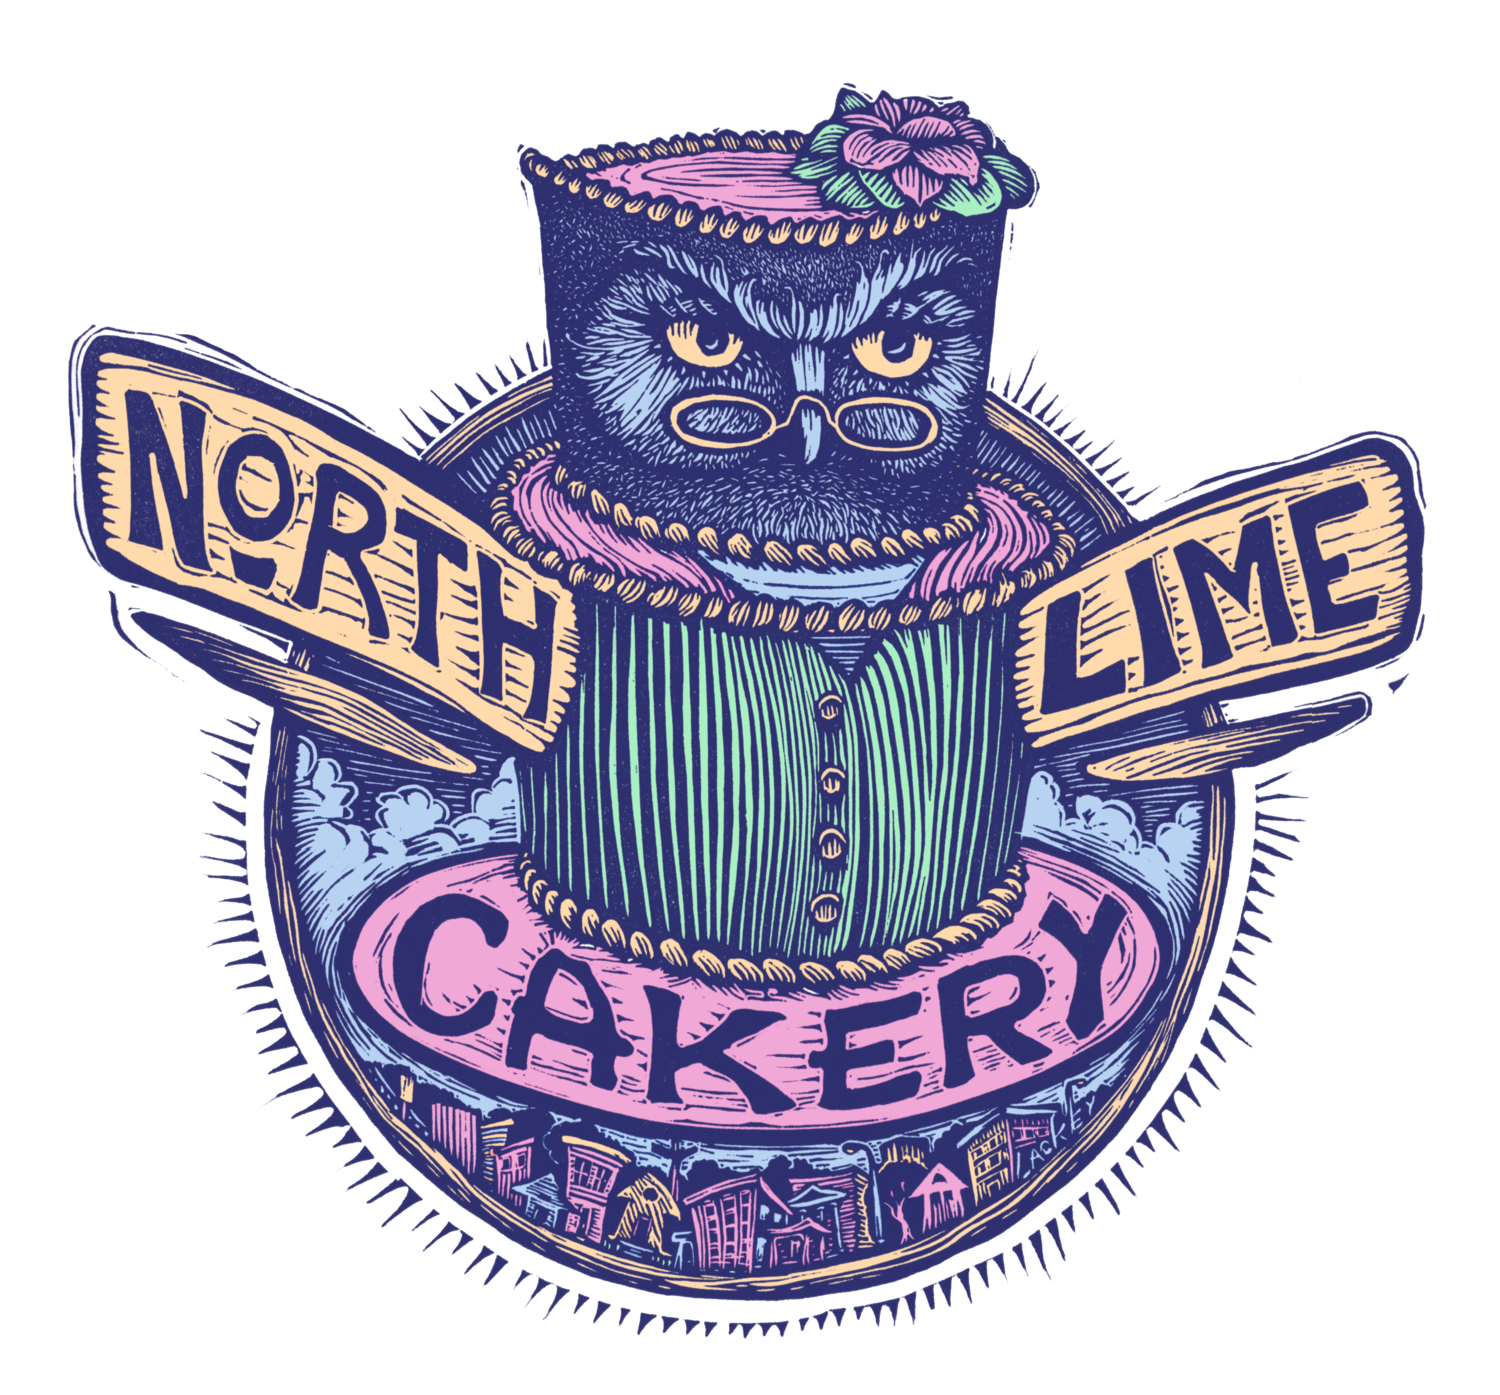 North Lime Cakery